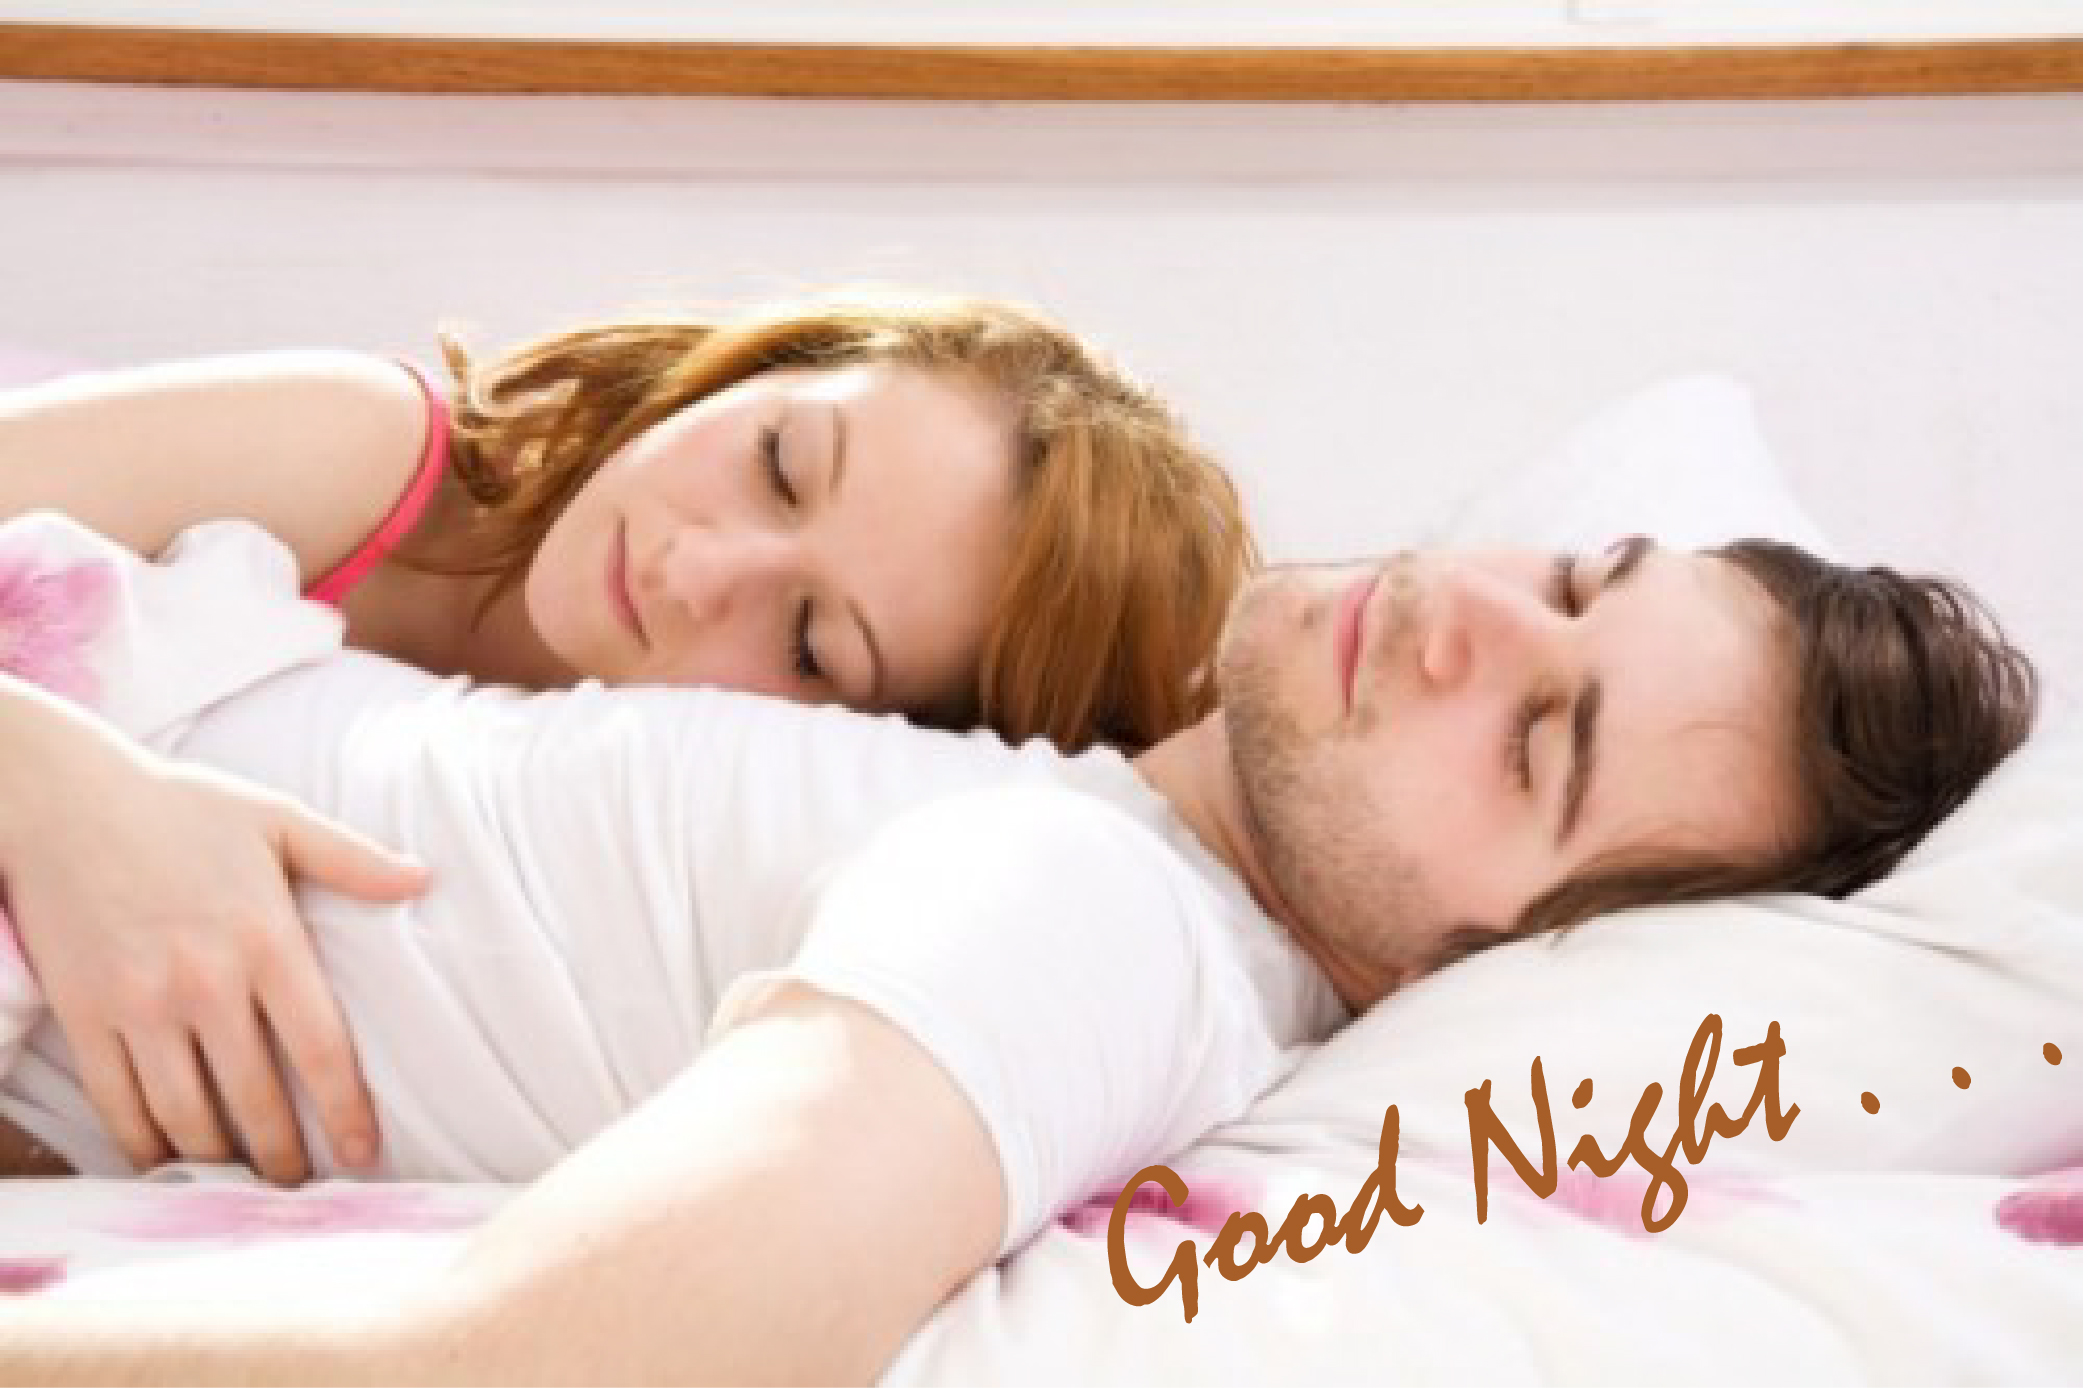 romantic couple sleeping on bed peacefully. Romantic Pictures of Couples in Bed  Sexy Couple Images